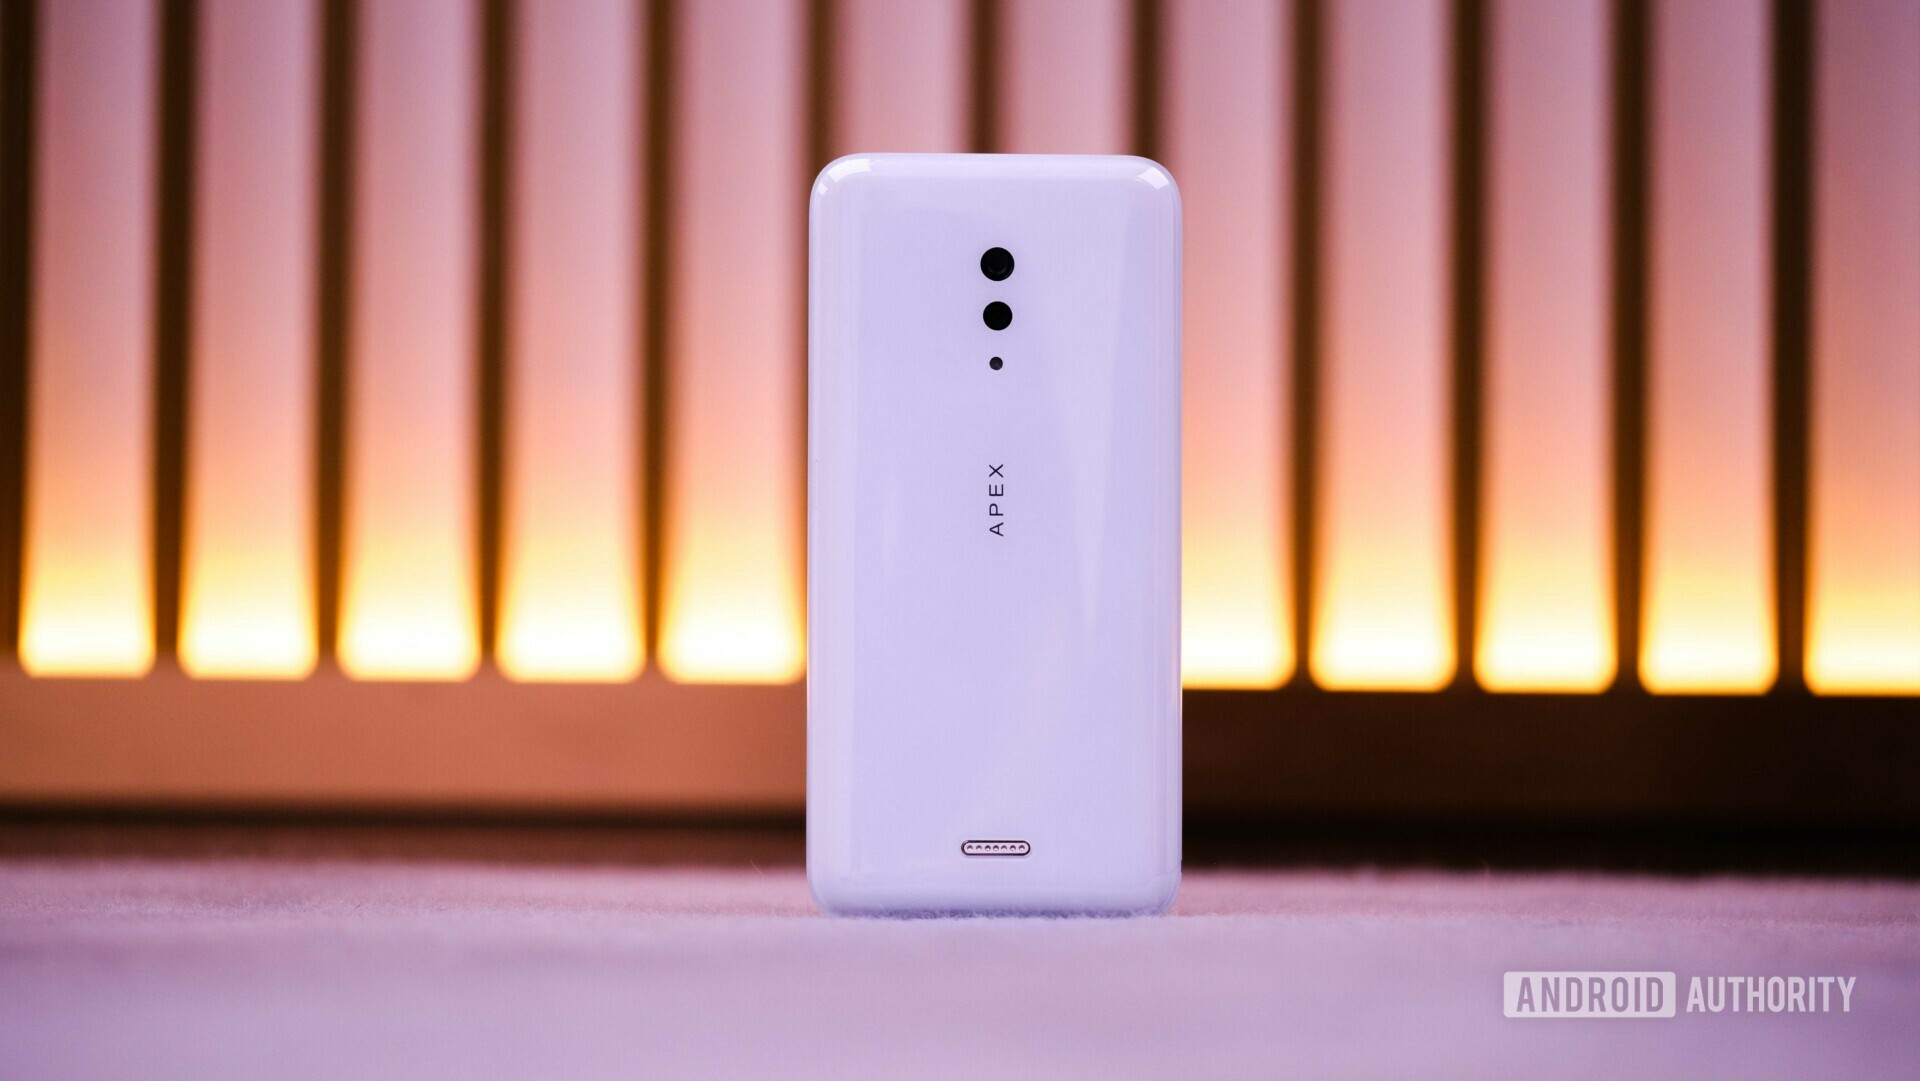 Vivo APEX 2019 , Vivo APEX 2019 Cam ,Vivo APEX 2019 Camera test,Vivo APEX 2019 Screen Repair, Vivo APEX 2019 Camera, Vivo APEX 2019 Unboxing, Vivo APEX 2019 Hands-on